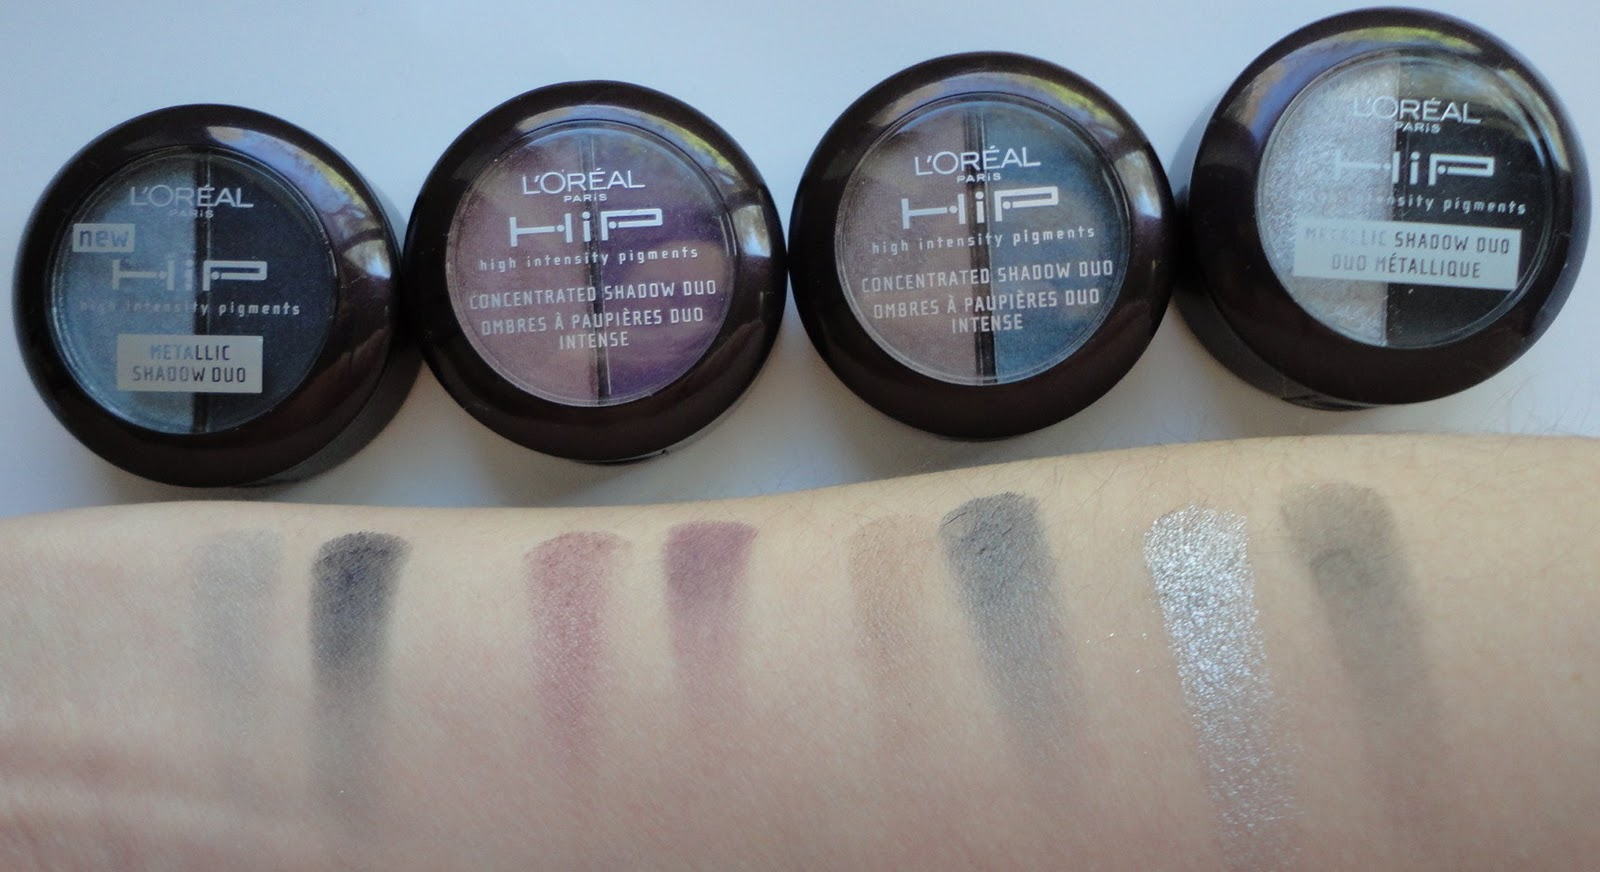 Connie Reviews: Review & Swatches: L'Oreal HiP Duo eyeshadow